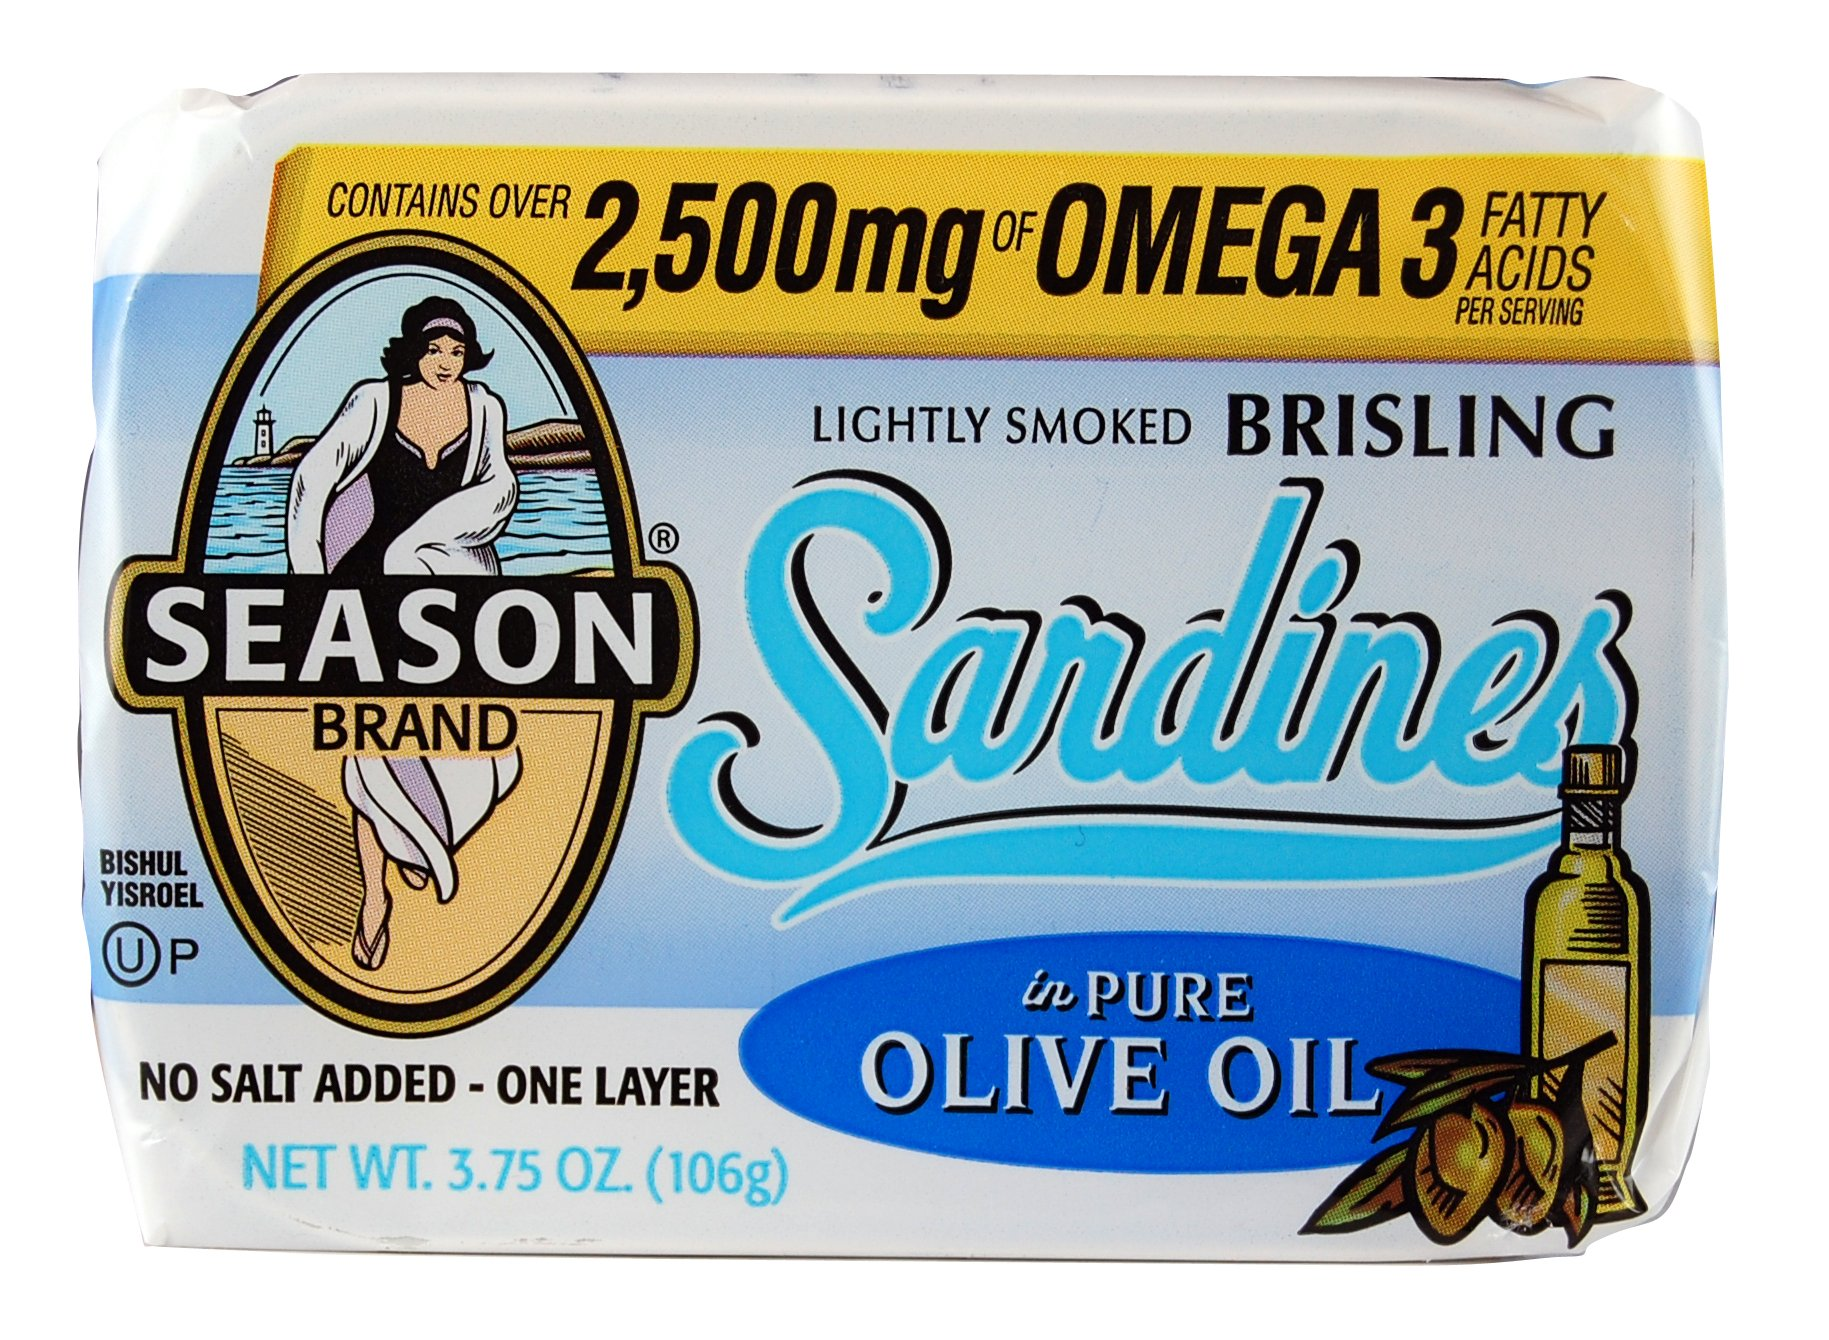 Season Brisling Sardines in Pure Olive Oil, No Salt Added, 3.75 Ounce (Pack of 12) by Season 1